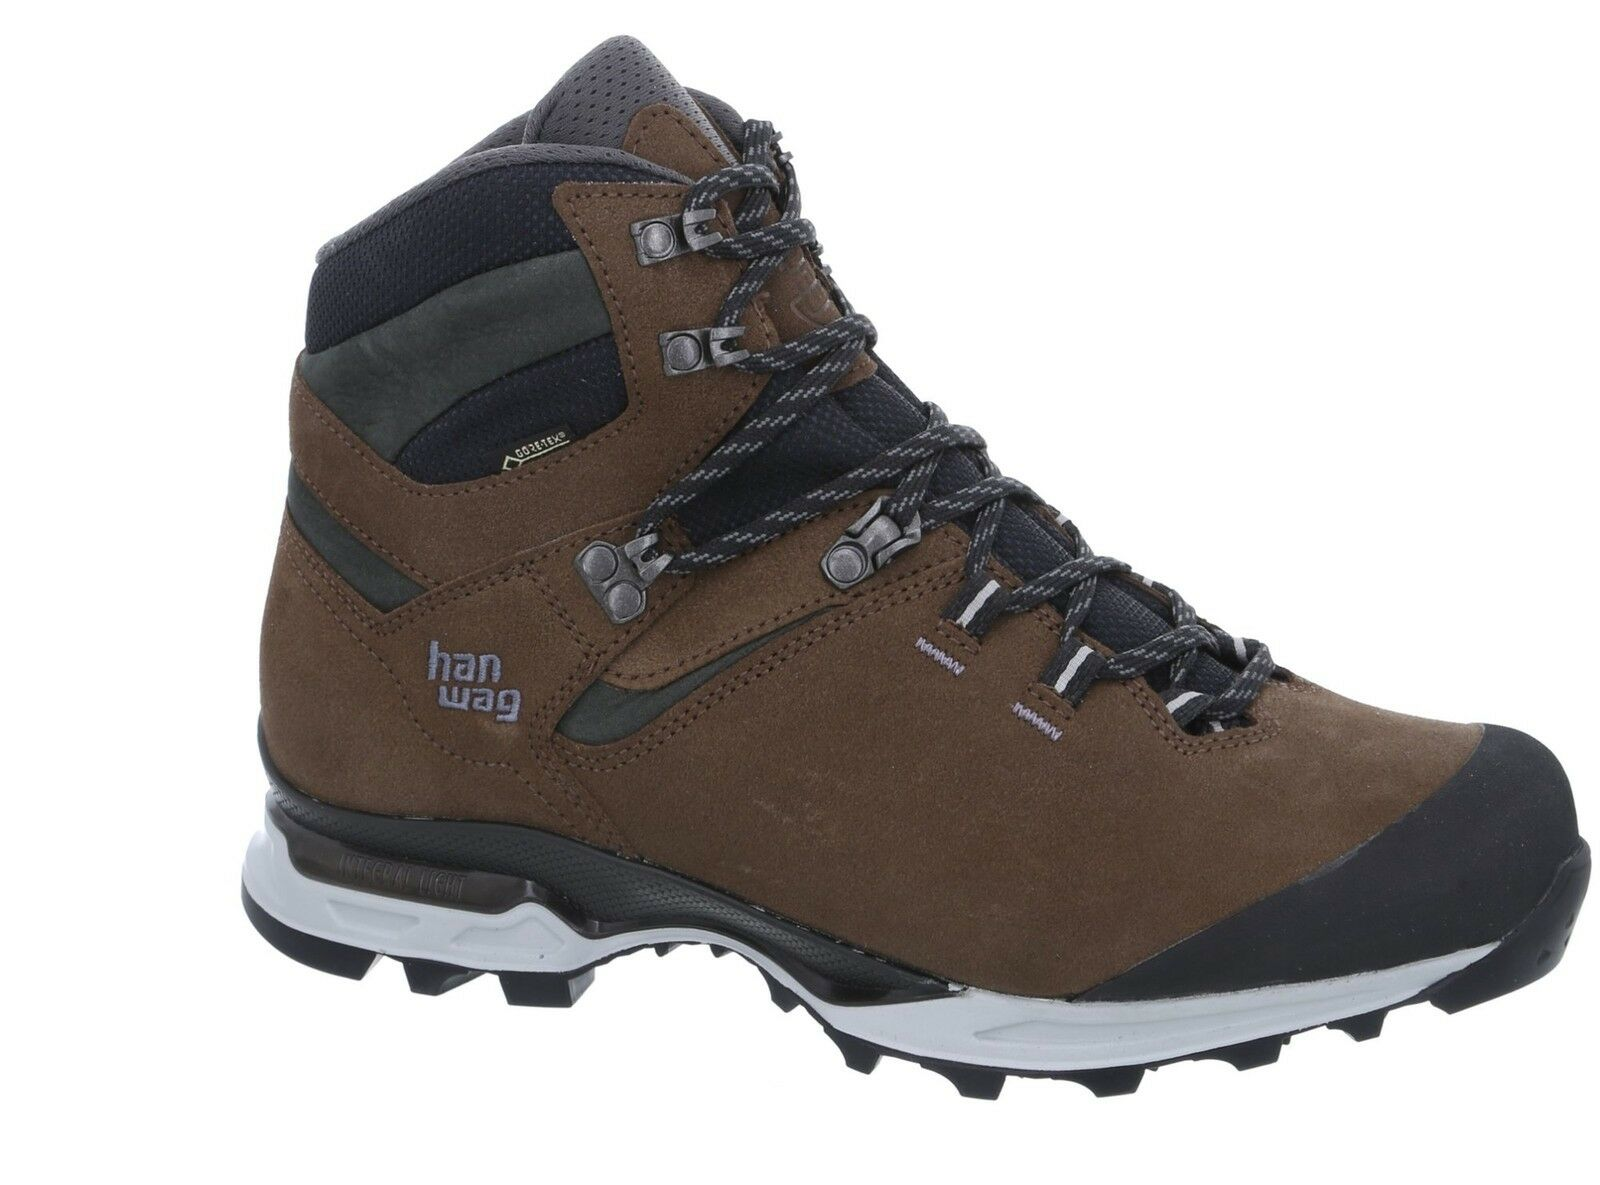 Hanwag montagne Tatras Light GTX Taille 13 - 48,5 marron anthracite